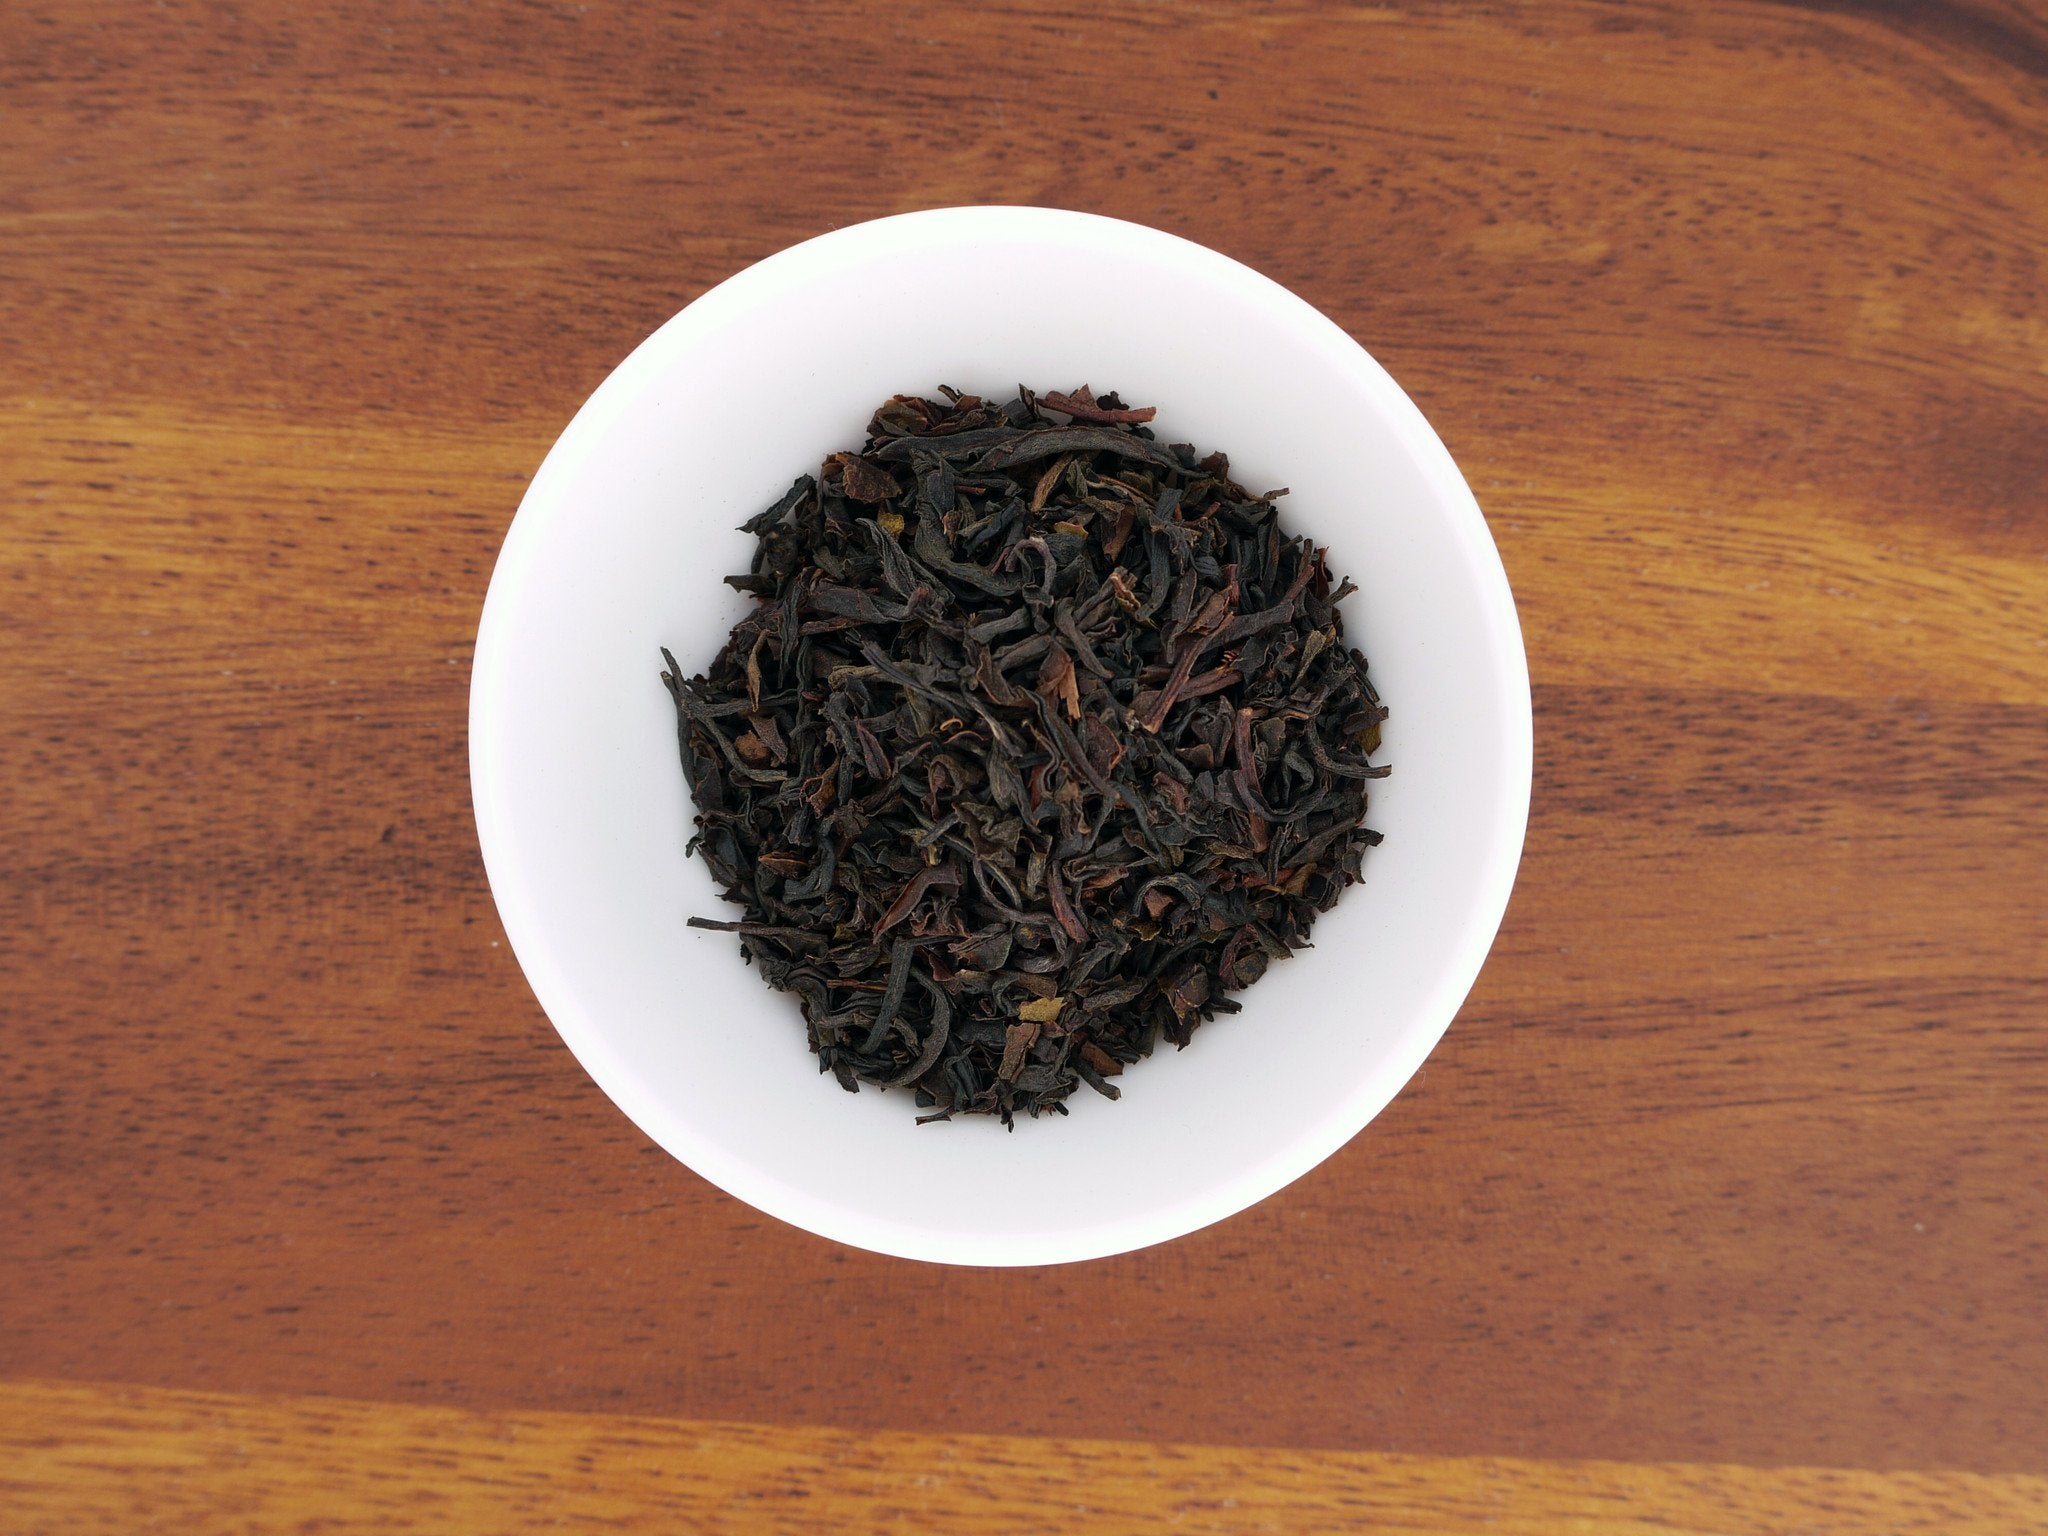 Organic Earl Grey Tea: Loose Leaf, Batch Tested Gluten-Free, Non-GMO & Vegan